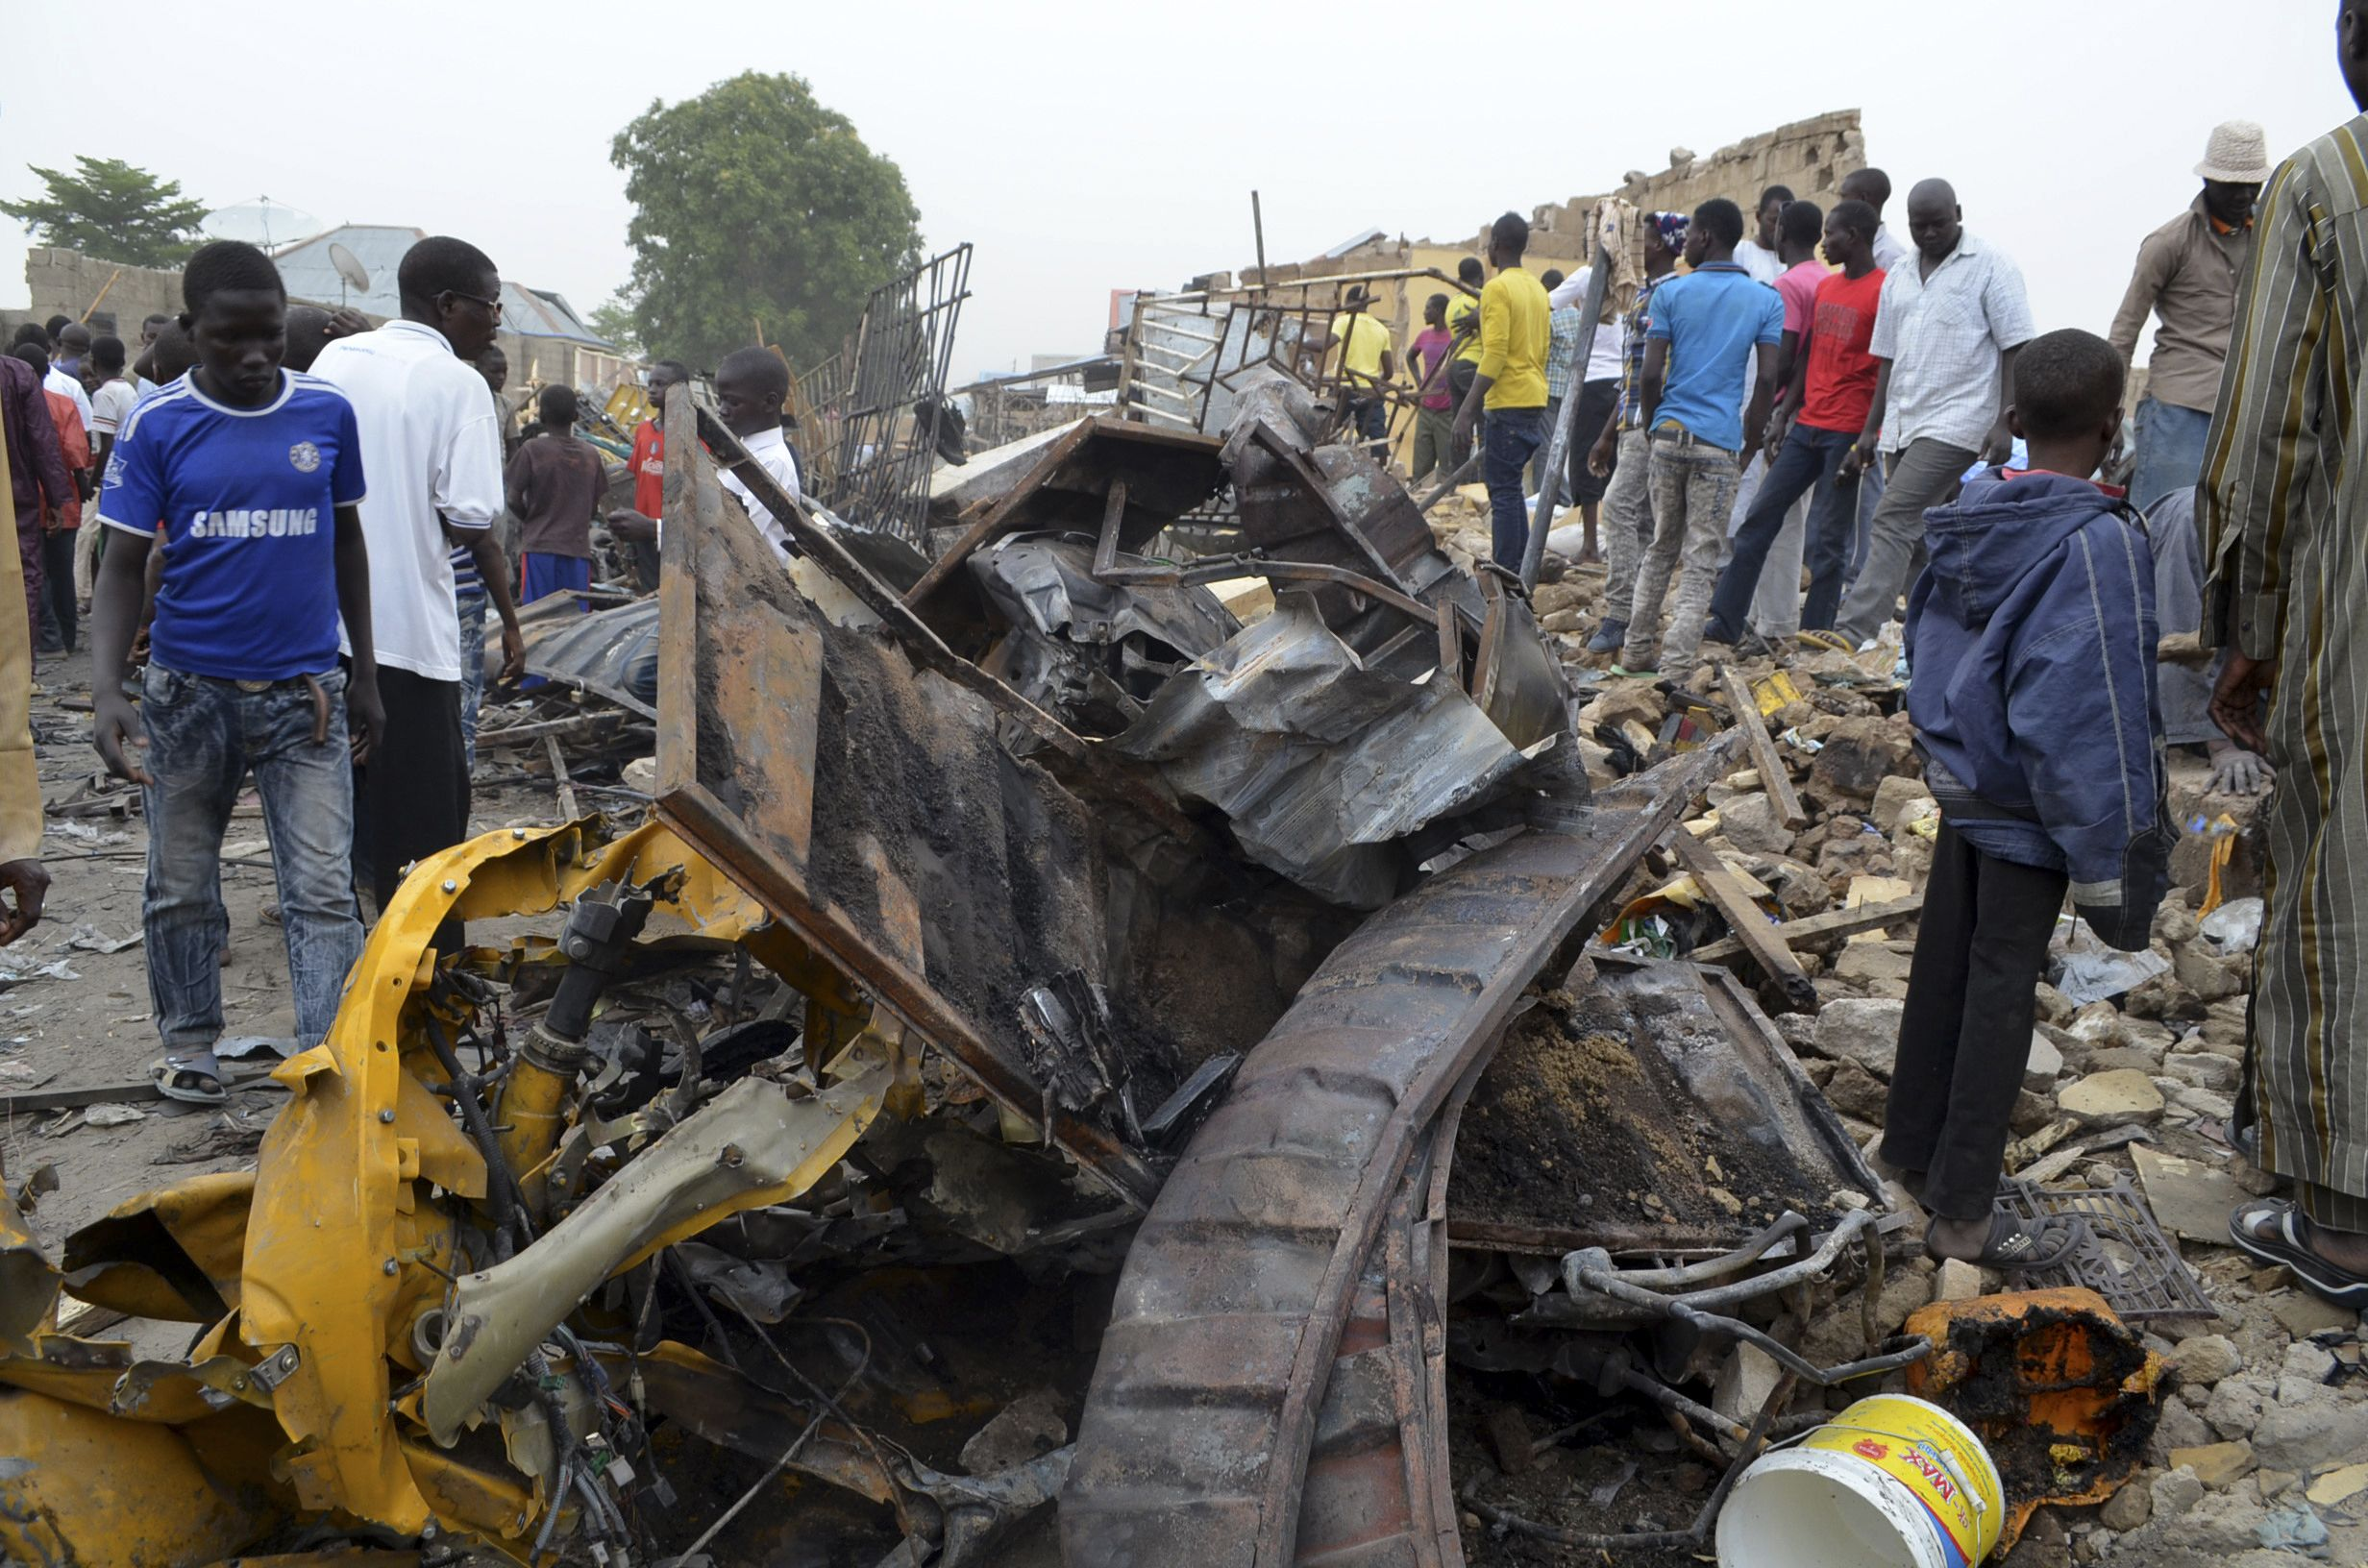 People inspect damage after an explosion in a market in Maiduguri, where Boko Haram are active.